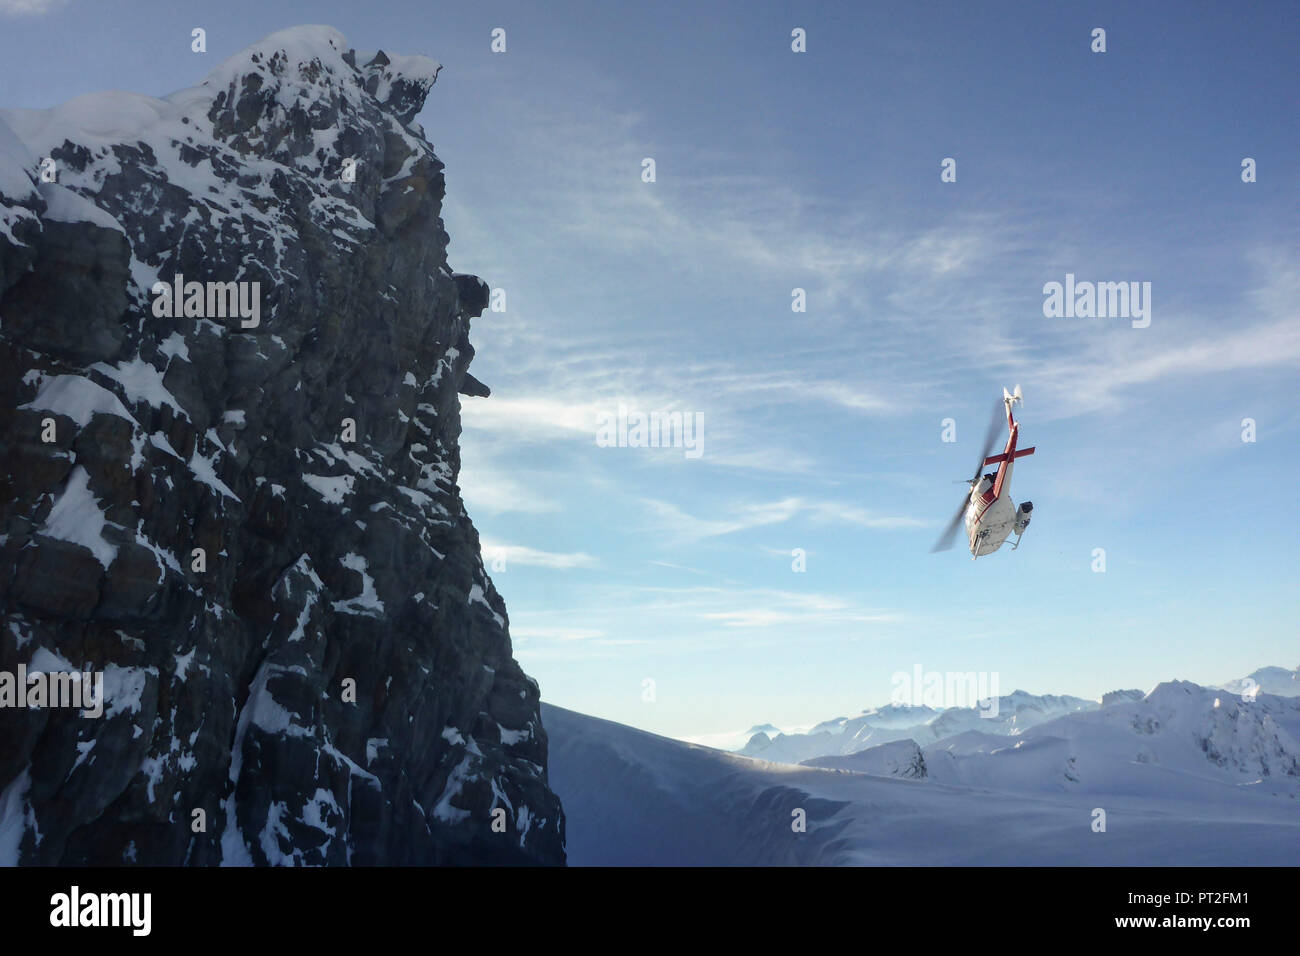 Canada, Canadian Rockies, British Columbia, Selkirk and the Purcell Mountains Heliskiing, helicopter, - Stock Image